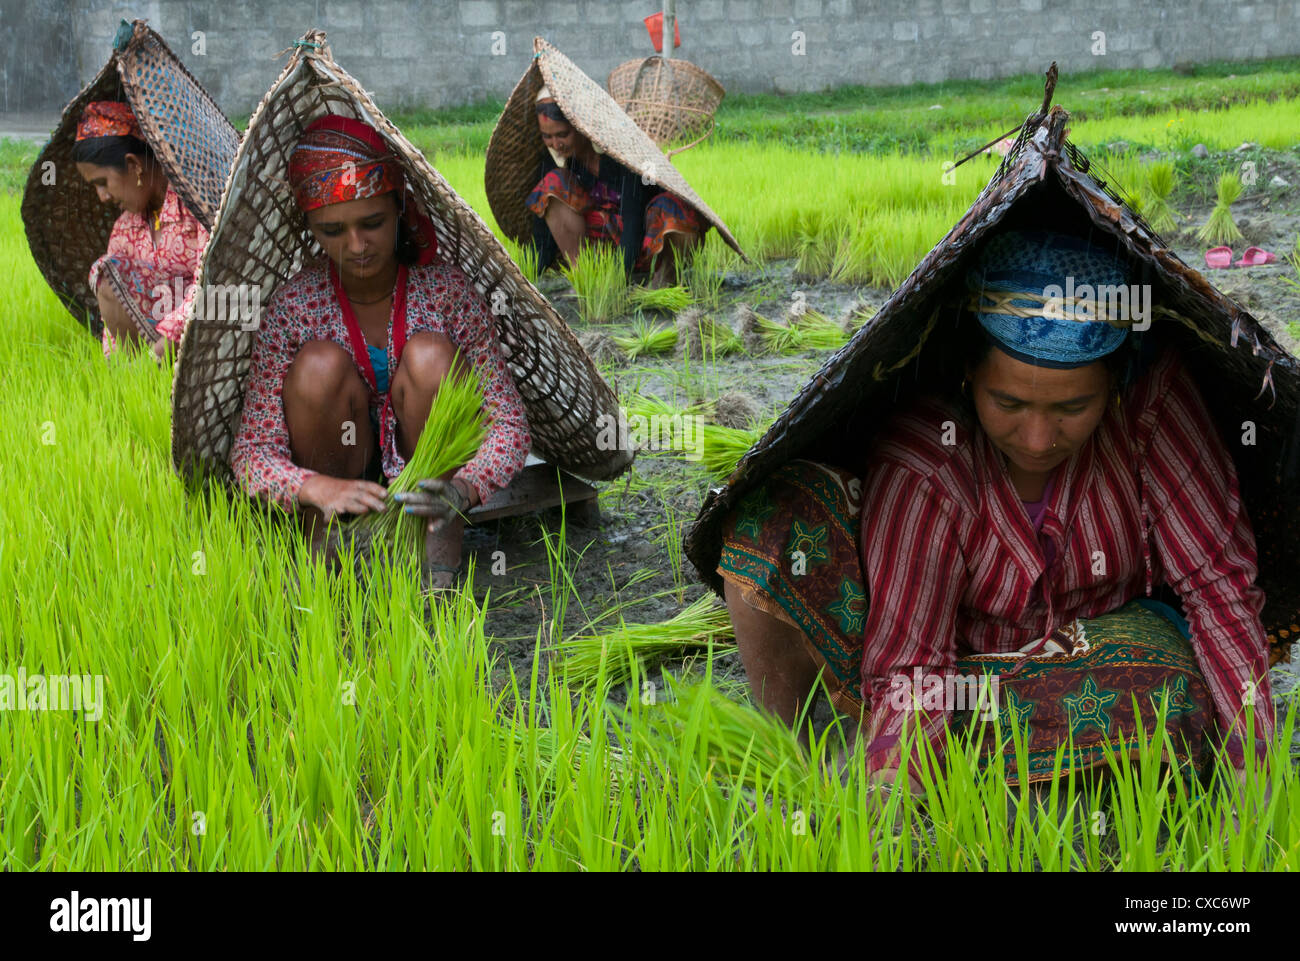 Female farmers at work in rice nursery, with rain protection, Annapurna area, Pokhara, Nepal, Asia - Stock Image